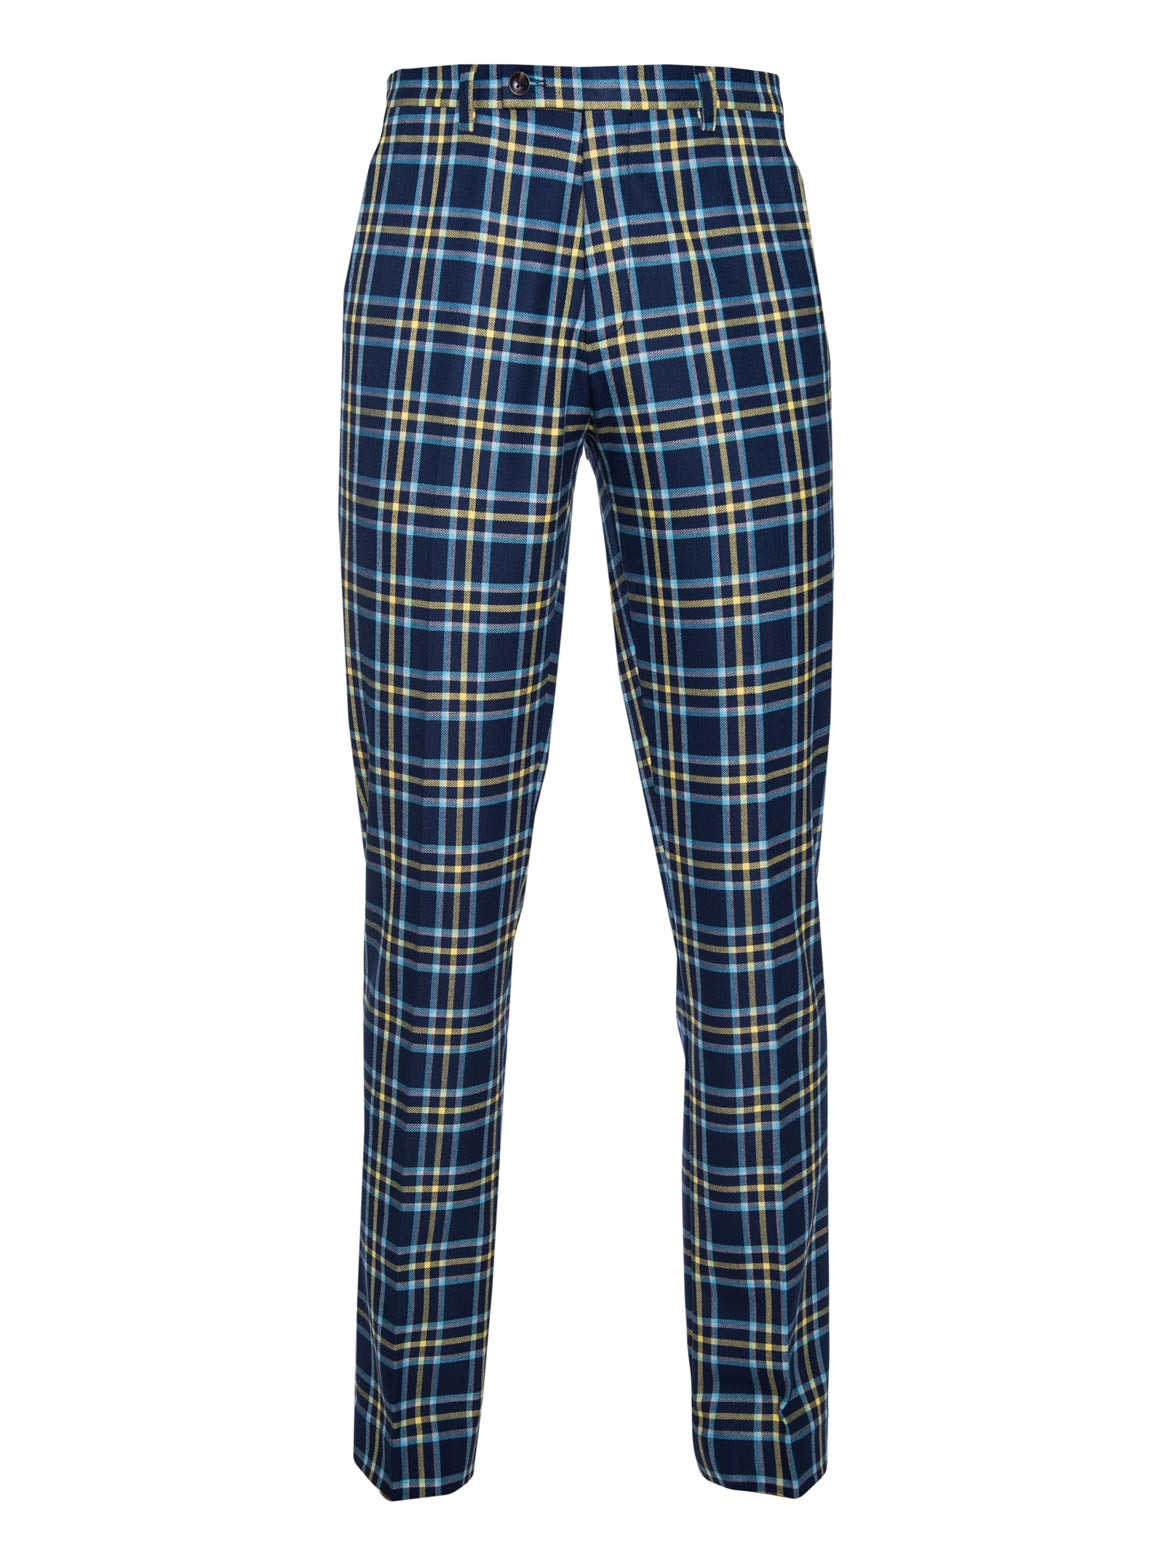 paisley & gray blue & yellow plaid slim fit suit pant 2124P